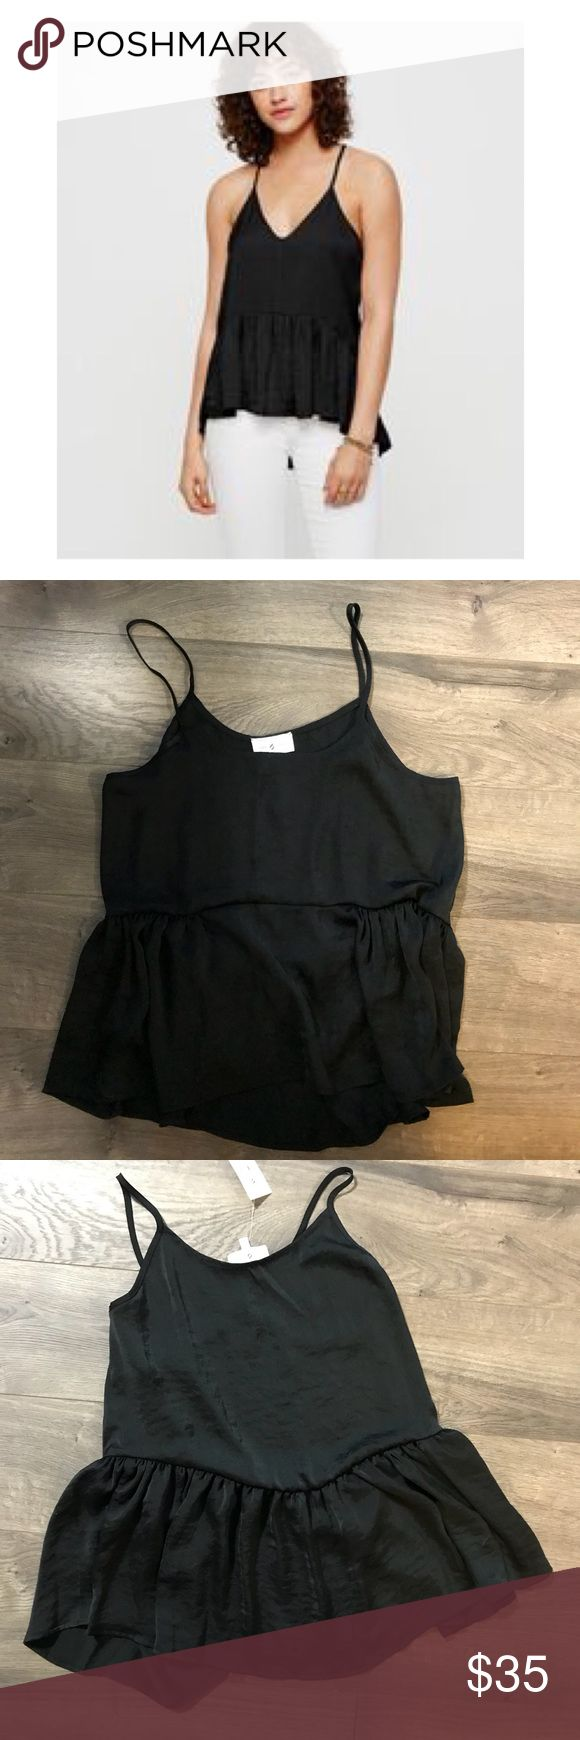 MWT Lou & Grey Luster Peplum Black Cami Comfy yet classy black strappy cami from Lou & Grey featuring a cute peplum for added interest. New with tags. Size small.   Measurements:  Armpit to Armpit: 16 Inches  Shoulder to Bottom Hem: 23 Inches Lou & Grey Tops Camisoles